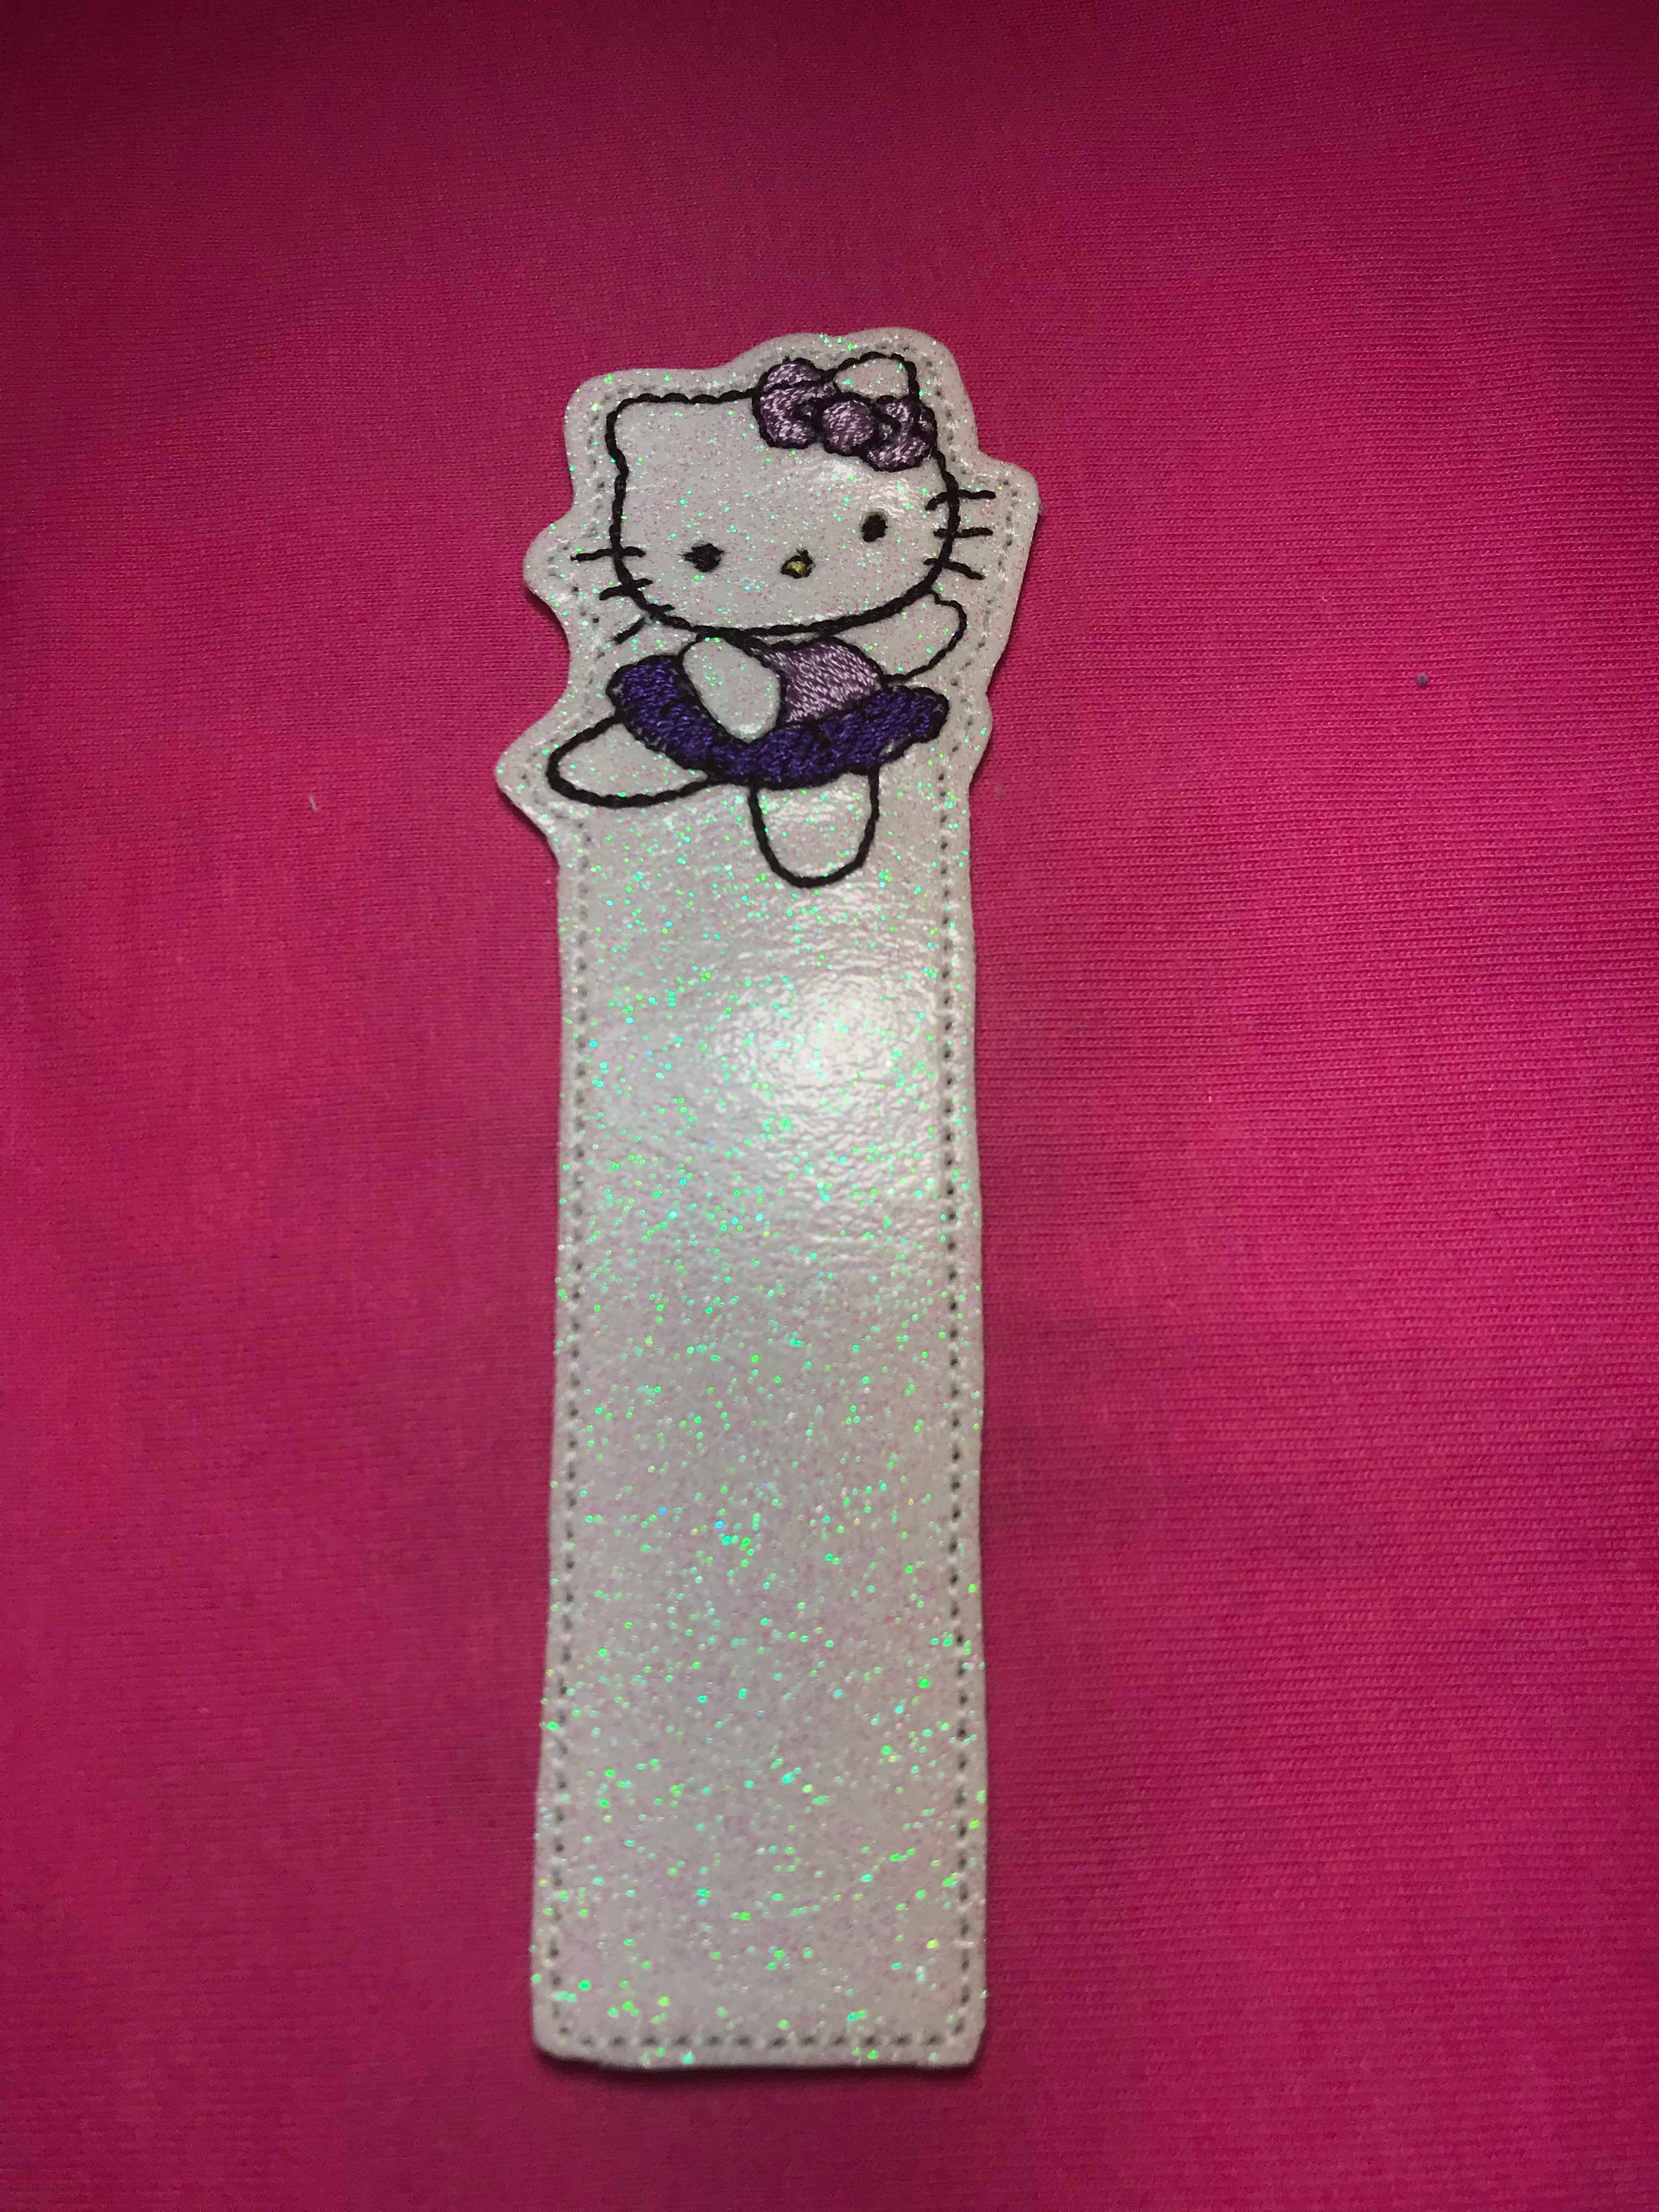 White Kitty Ballerina Bookmark Embroidery Design